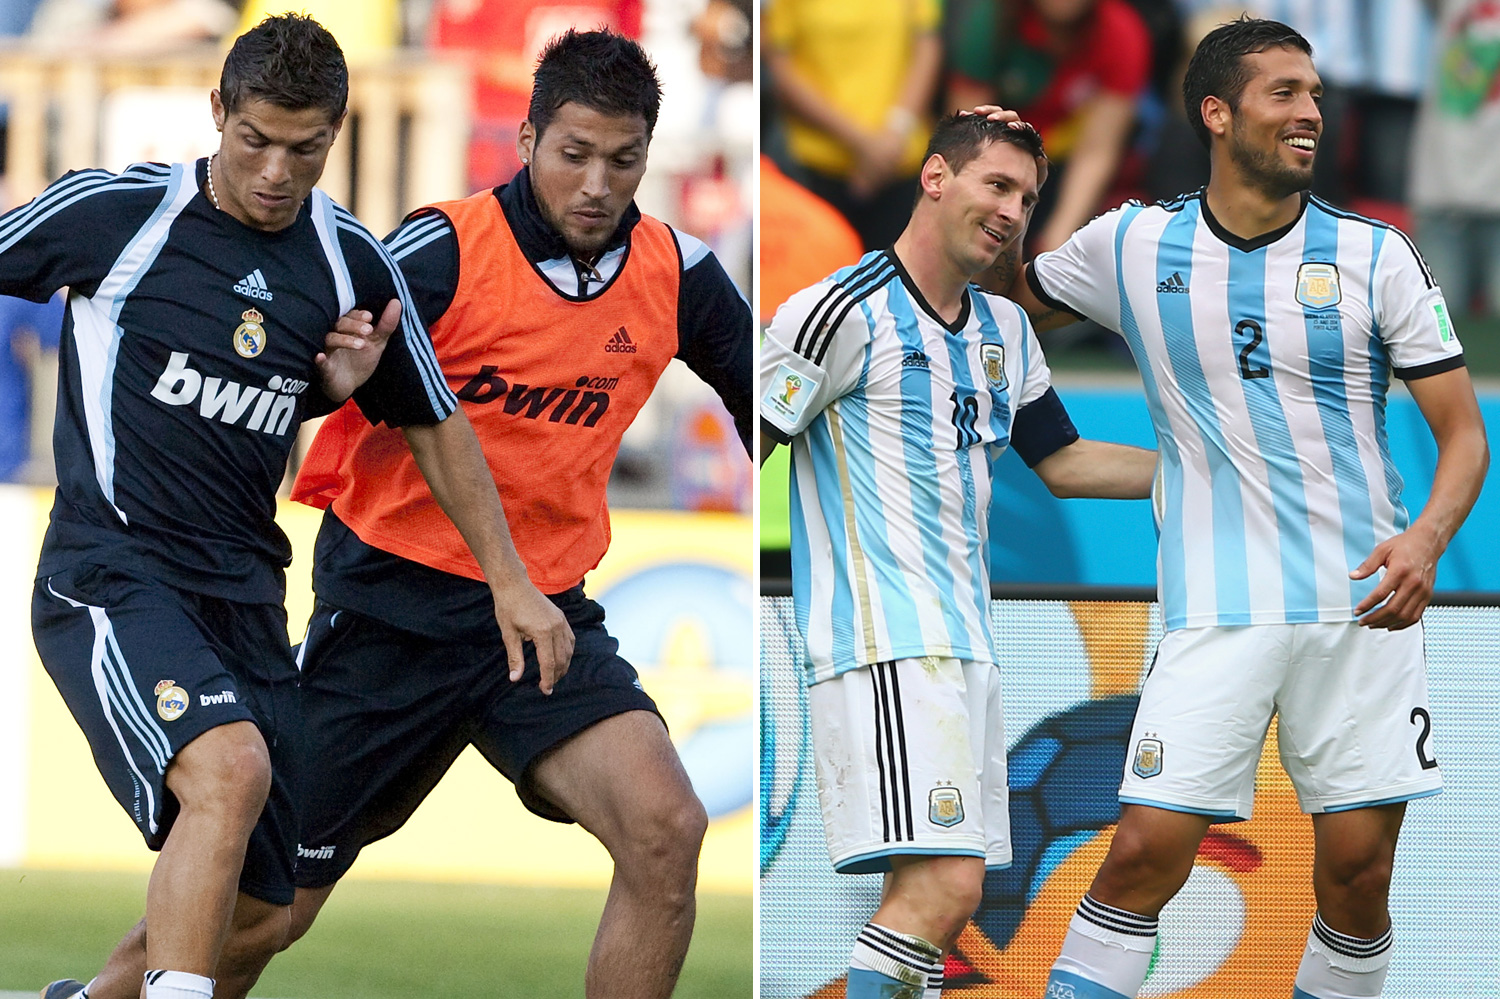 Garay opted for his fellow Argentine Messi over Ronaldo